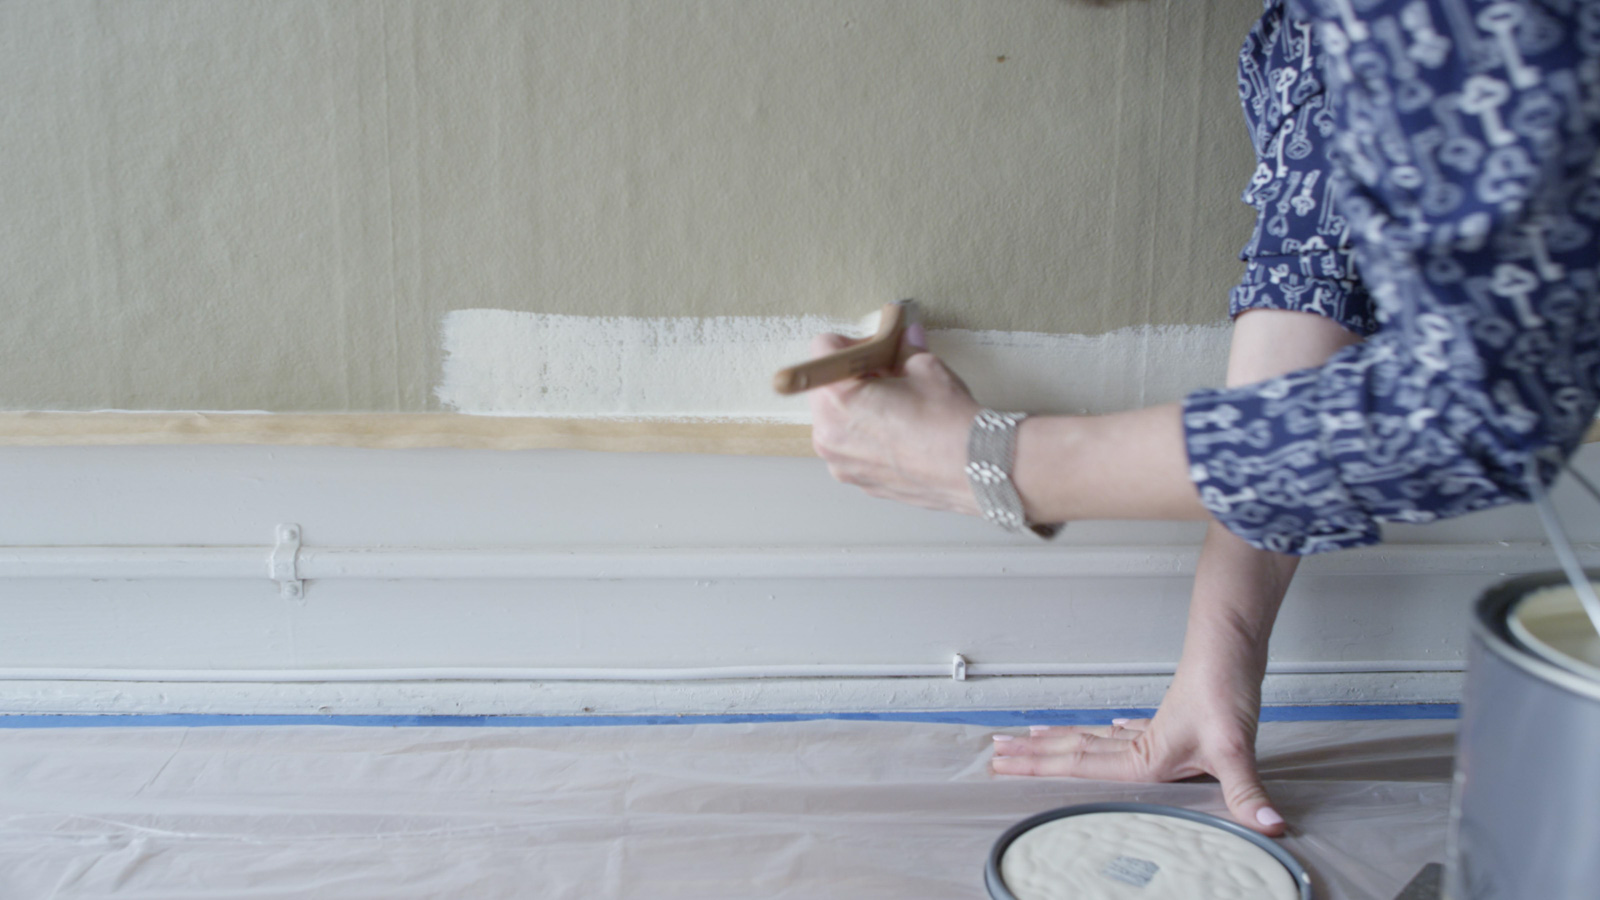 using paintbrush on wall